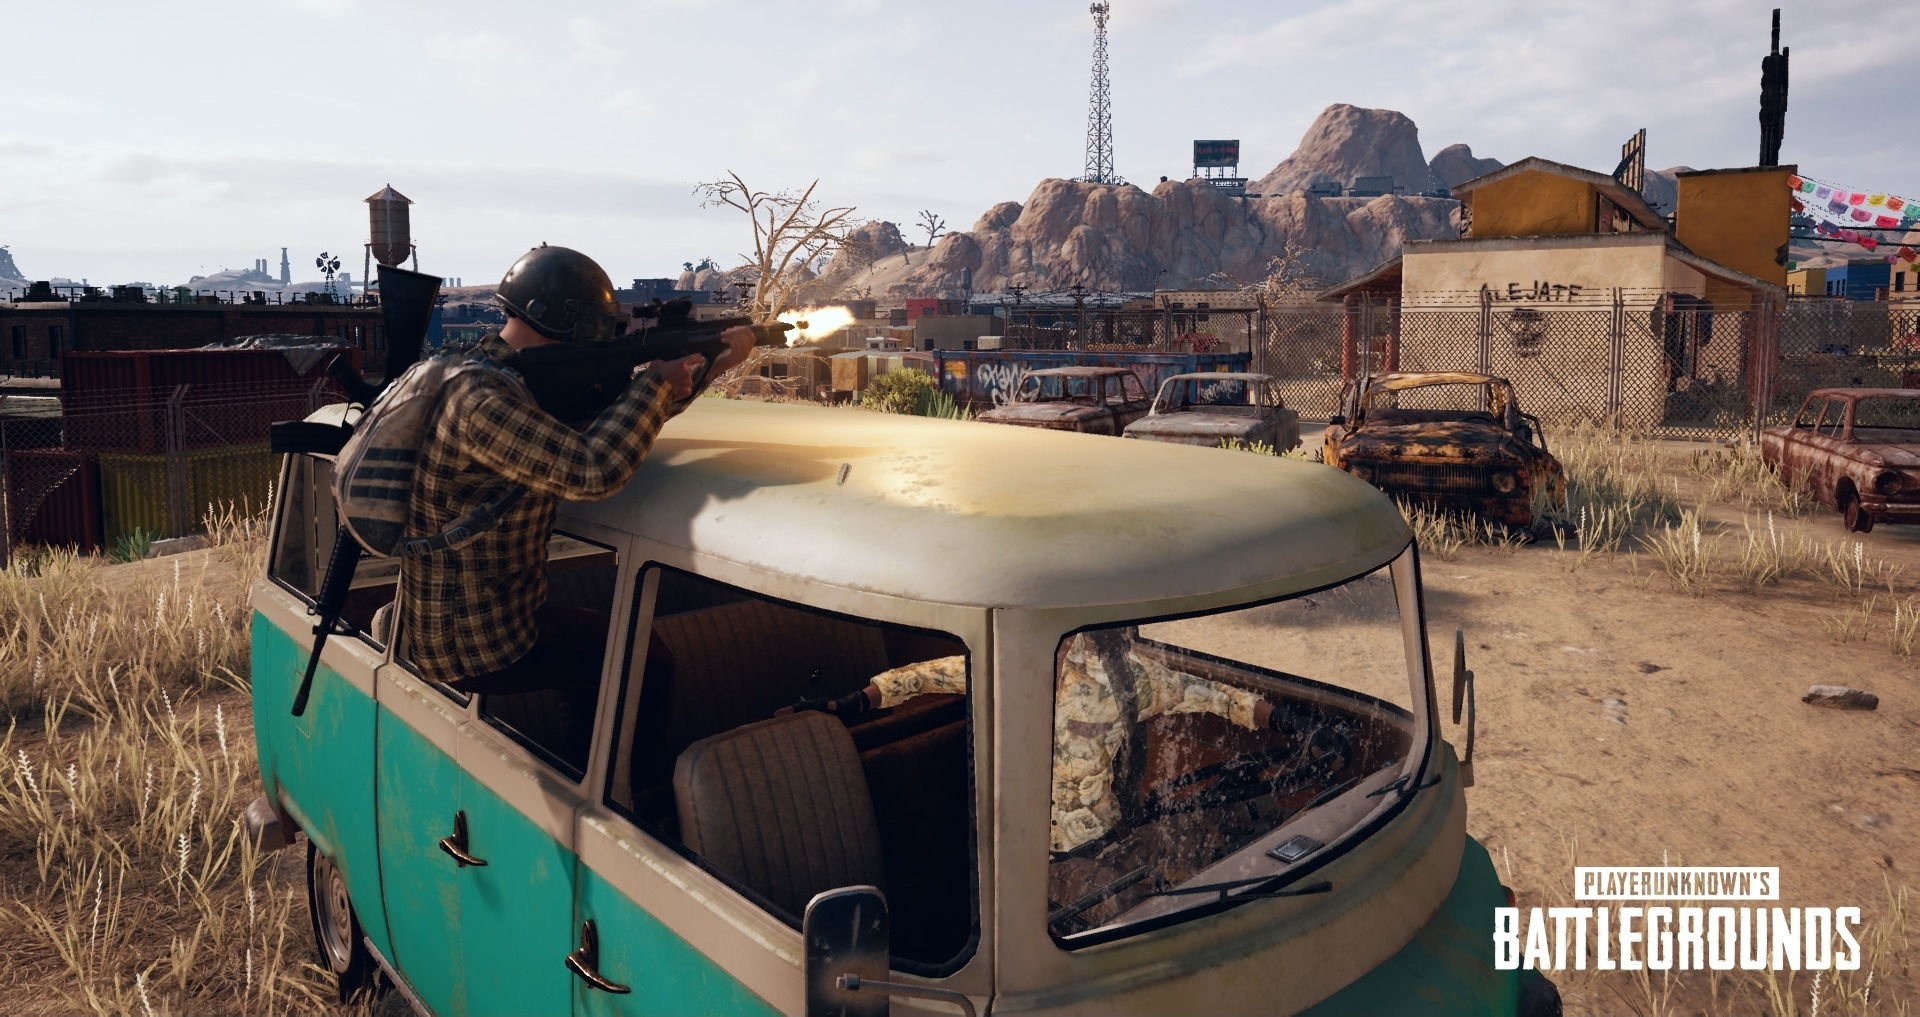 Latest Patch for PlayerUnknown's Battlegrounds' PC Version Addresses Games Crashes